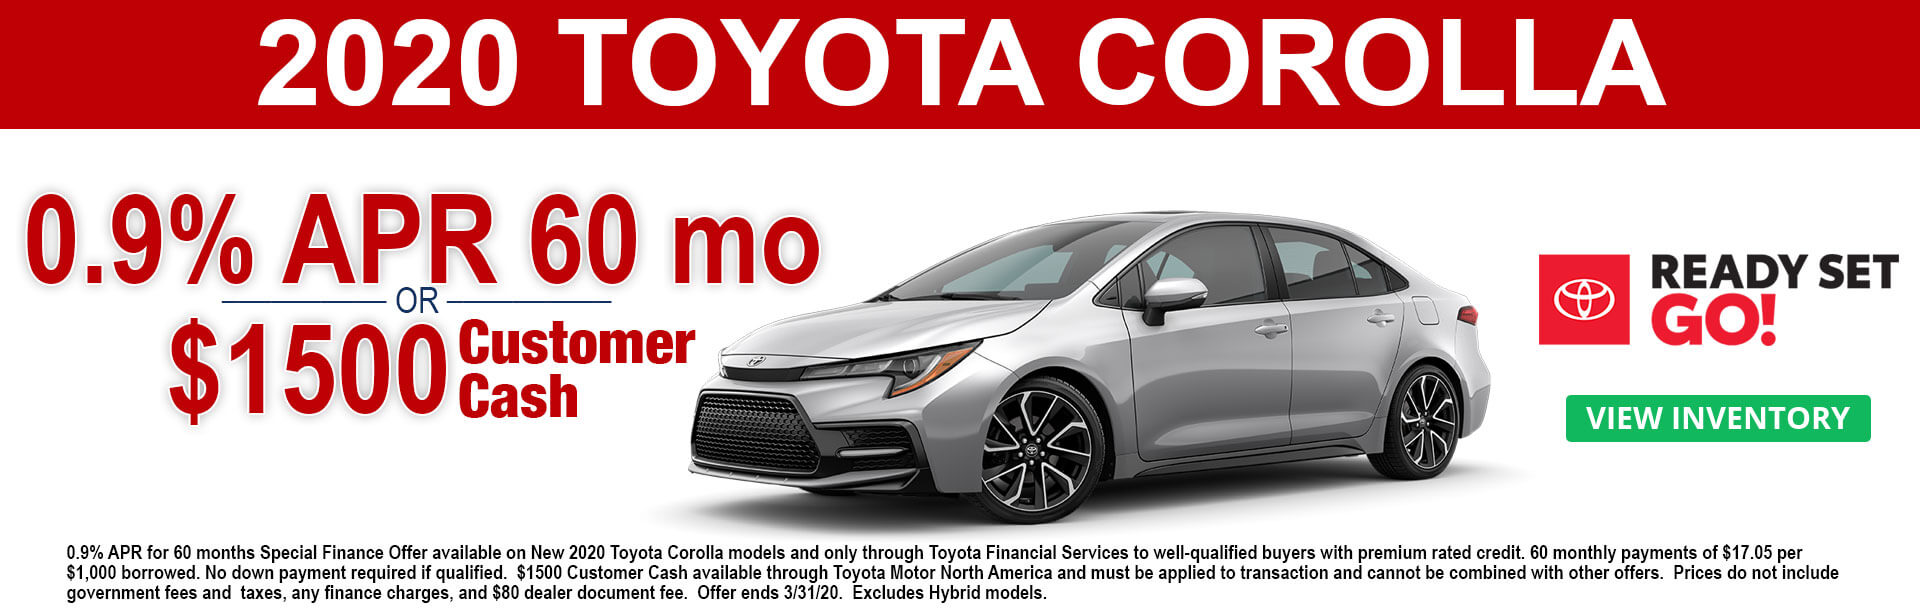 2020 Toyota Corolla APR and Cash Offer